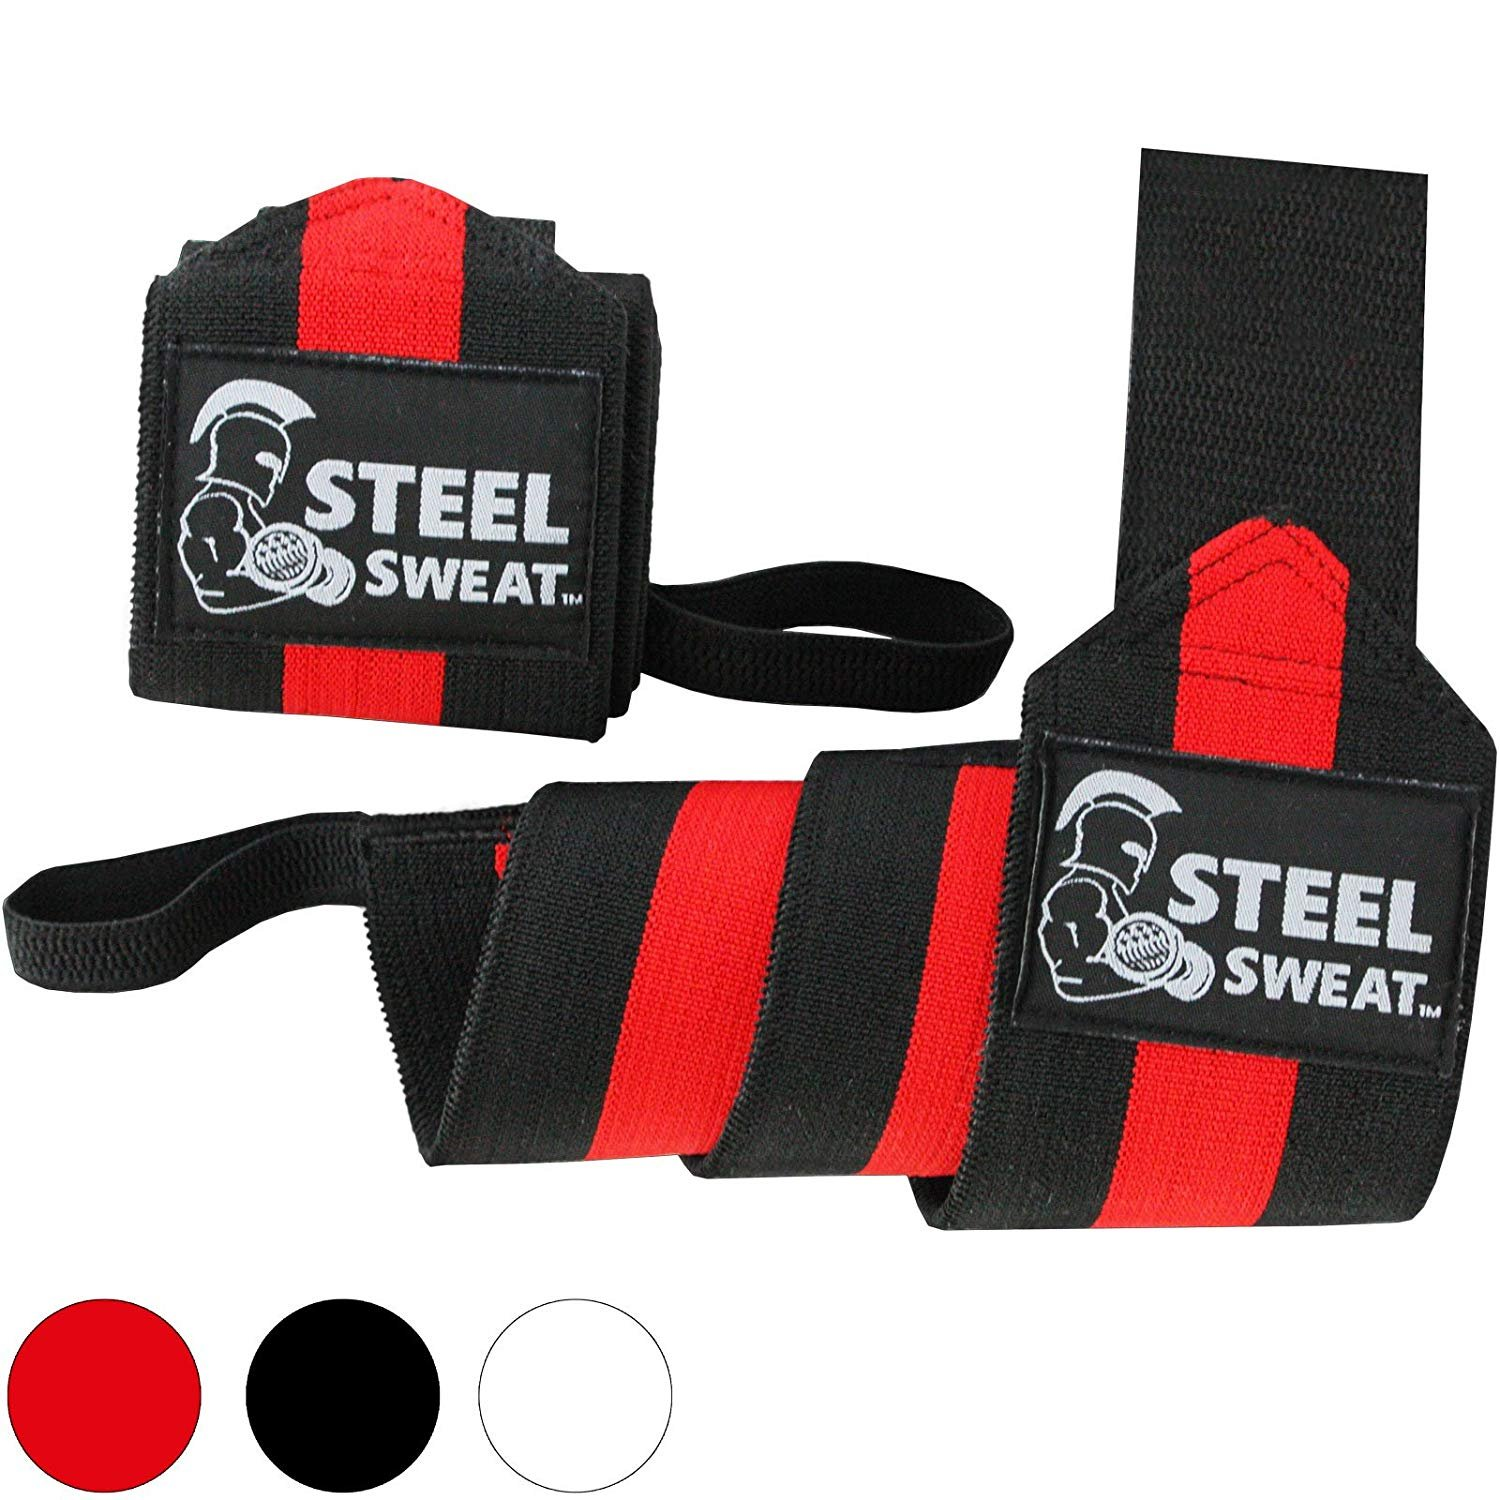 Steel Sweat Wrist Wraps - Best for Weight Lifting, Powerlifting, Gym and Crossfit Training - Heavy Duty Support - Sizes 14 18 24